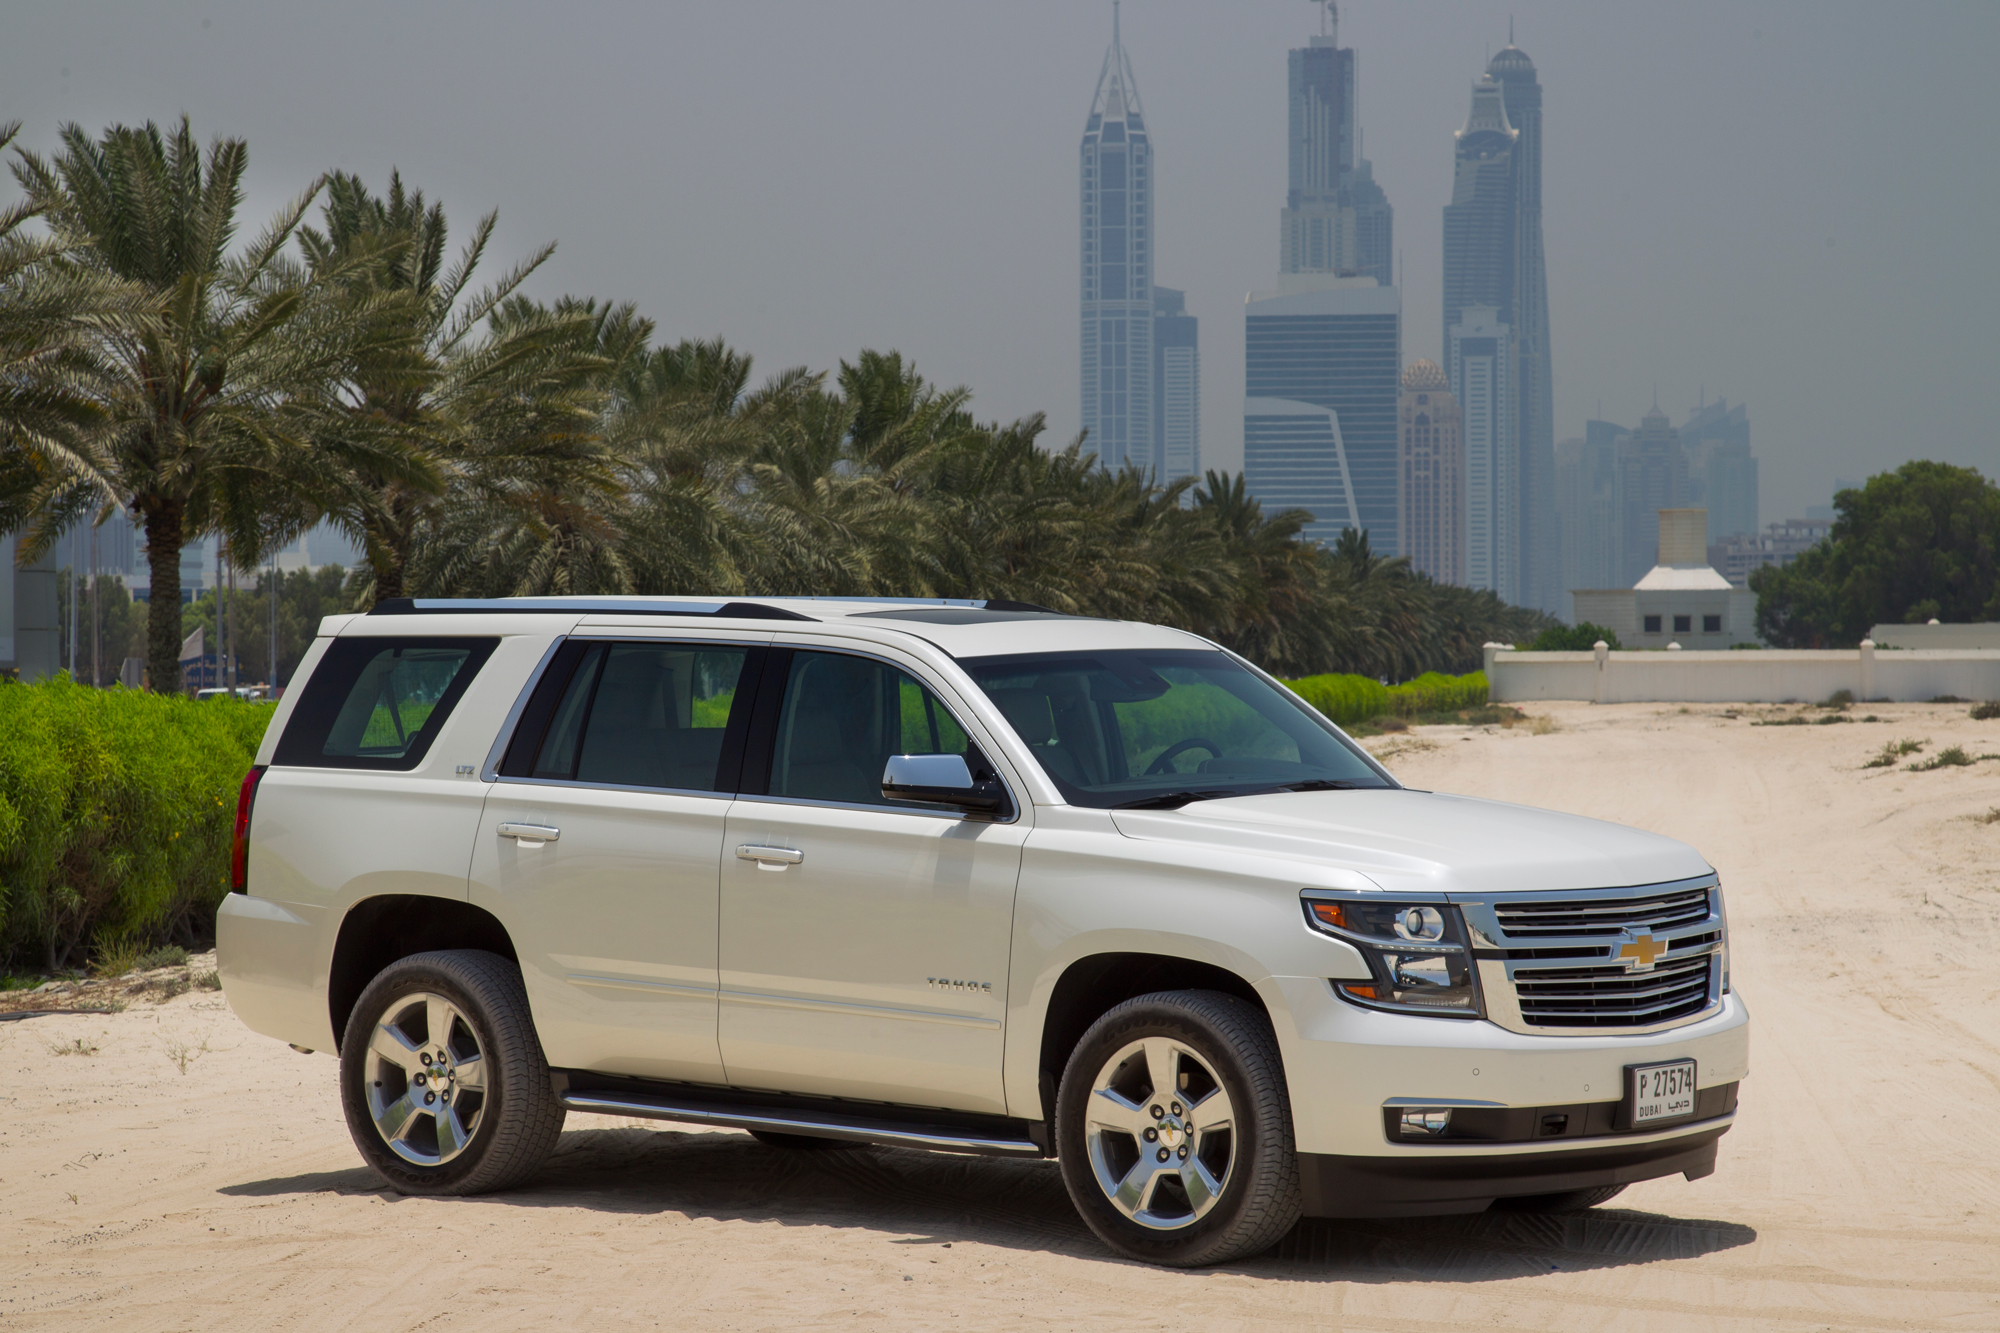 2015 chevrolet tahoe reviewmotoring middle east car news reviews and buying guides. Black Bedroom Furniture Sets. Home Design Ideas